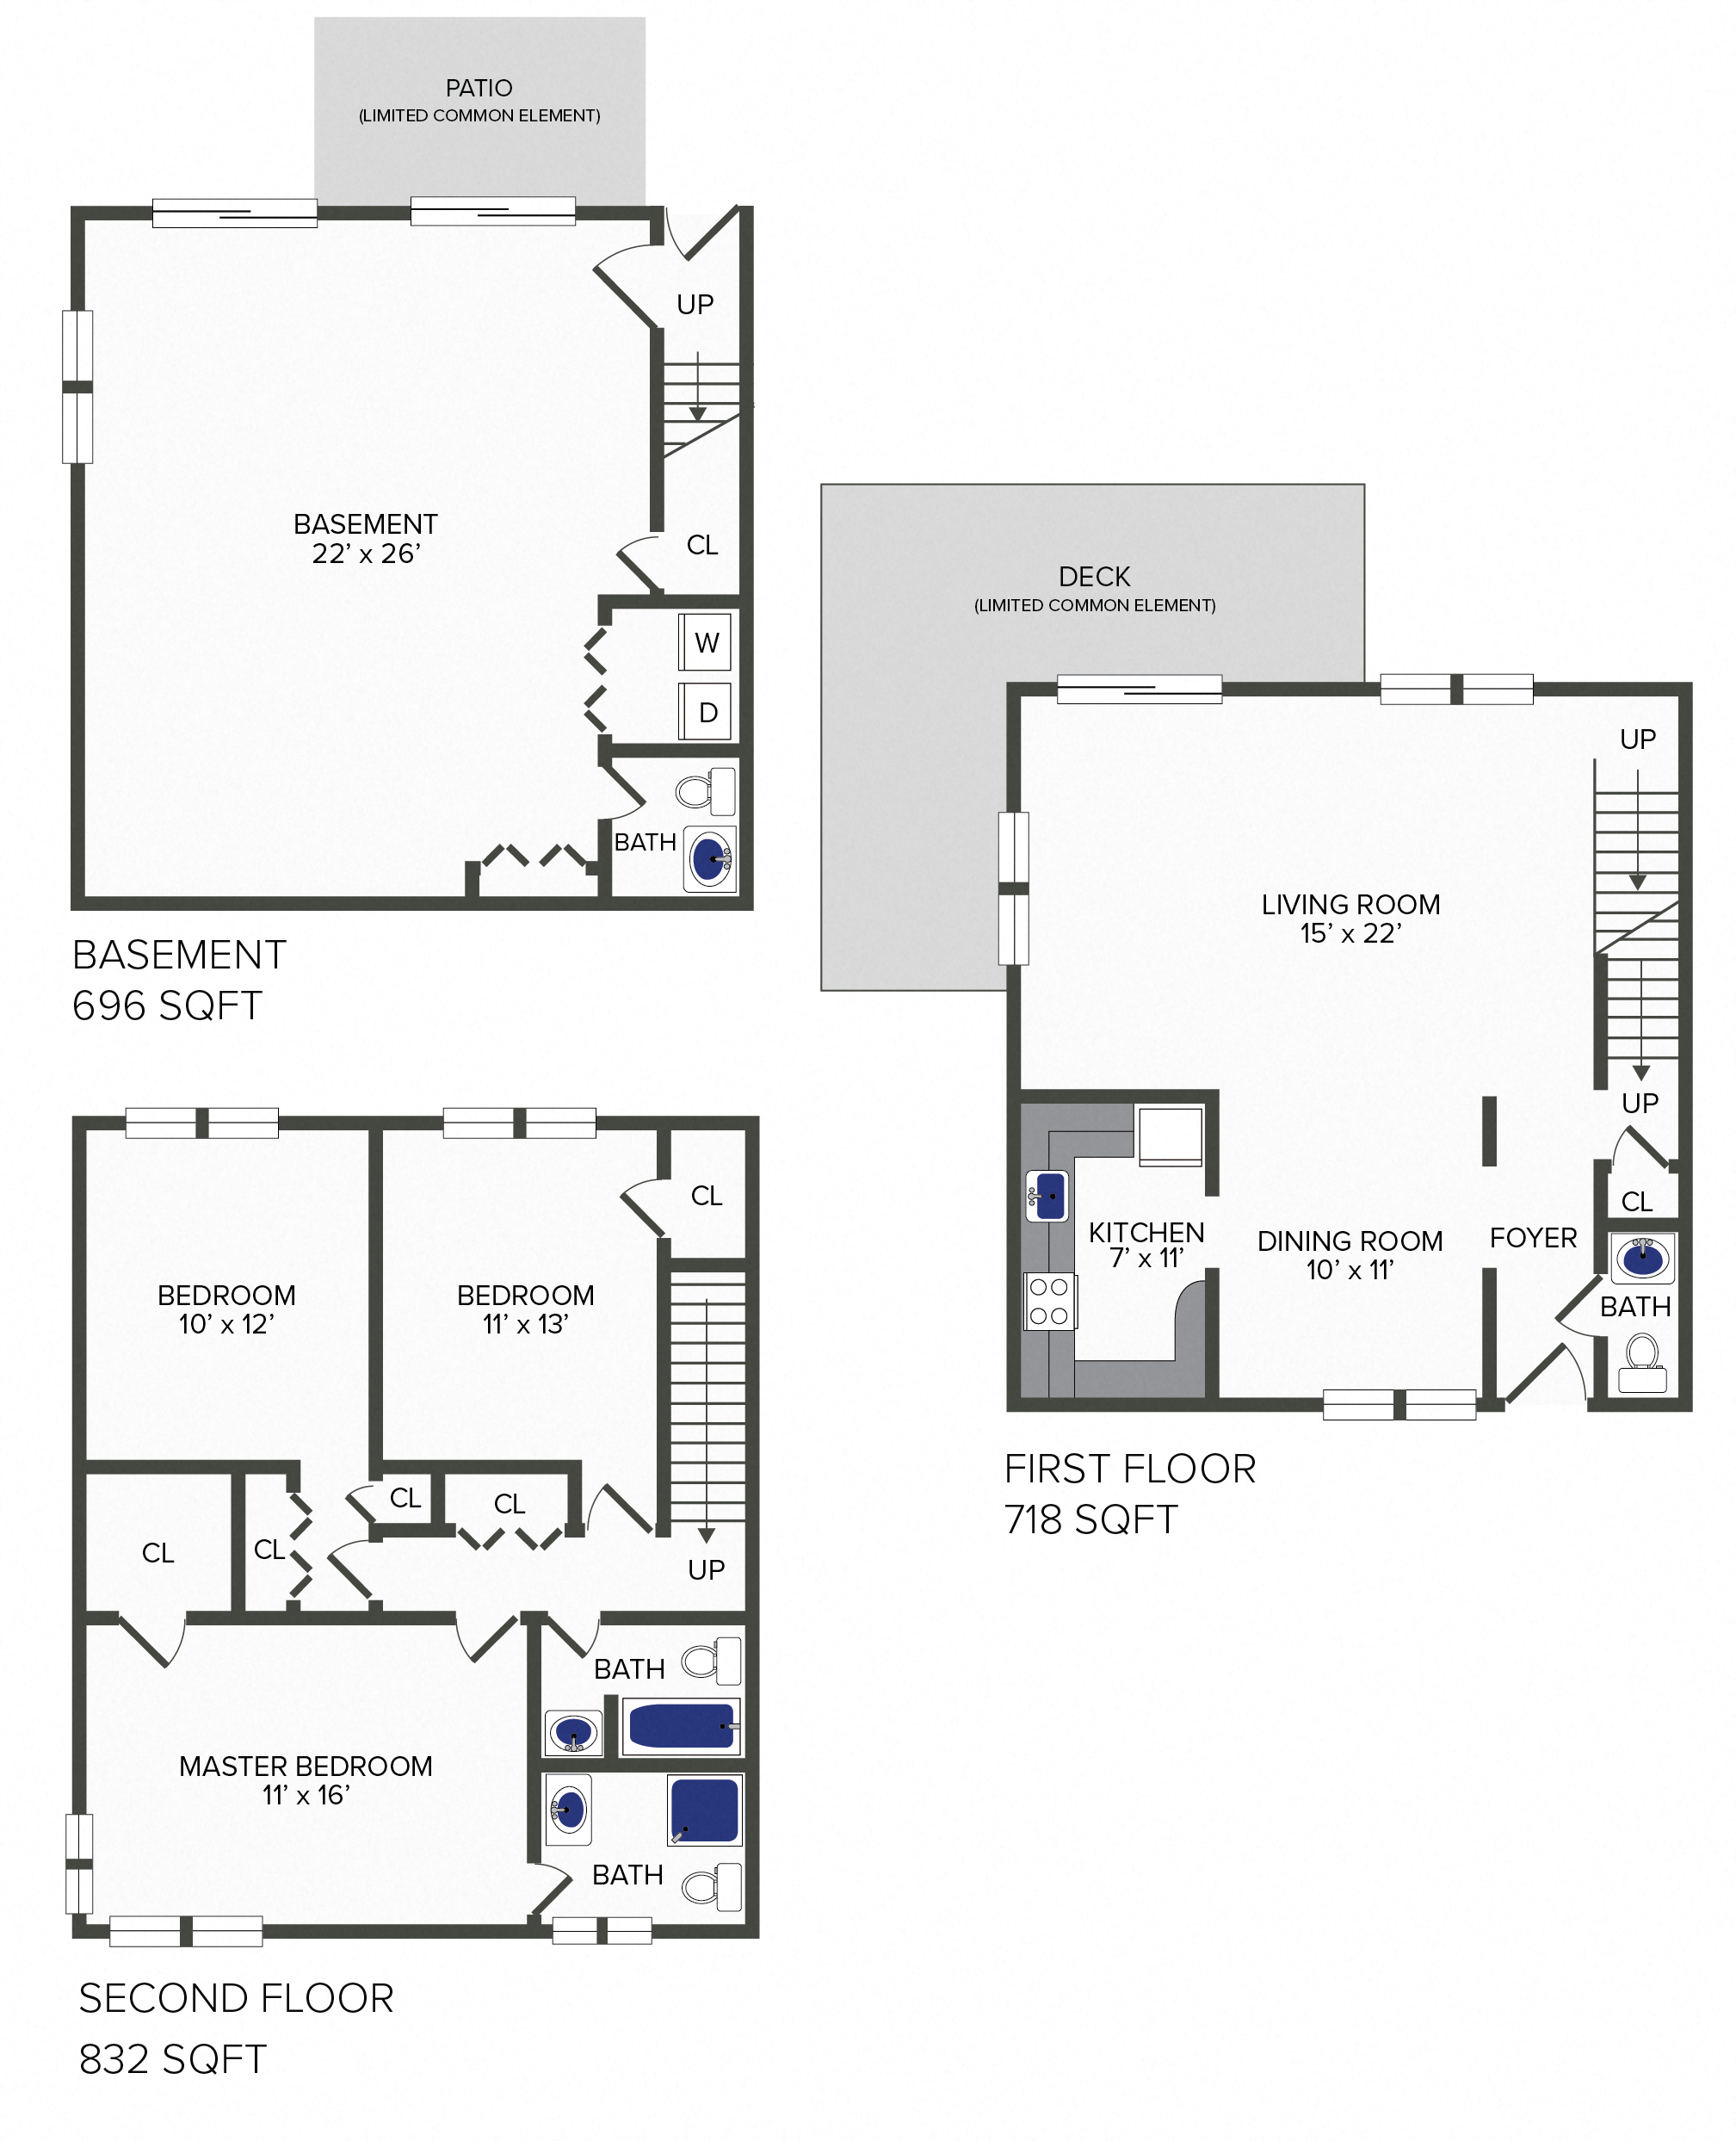 Floor Plans Of Greenwich Place In Greenwich, CT